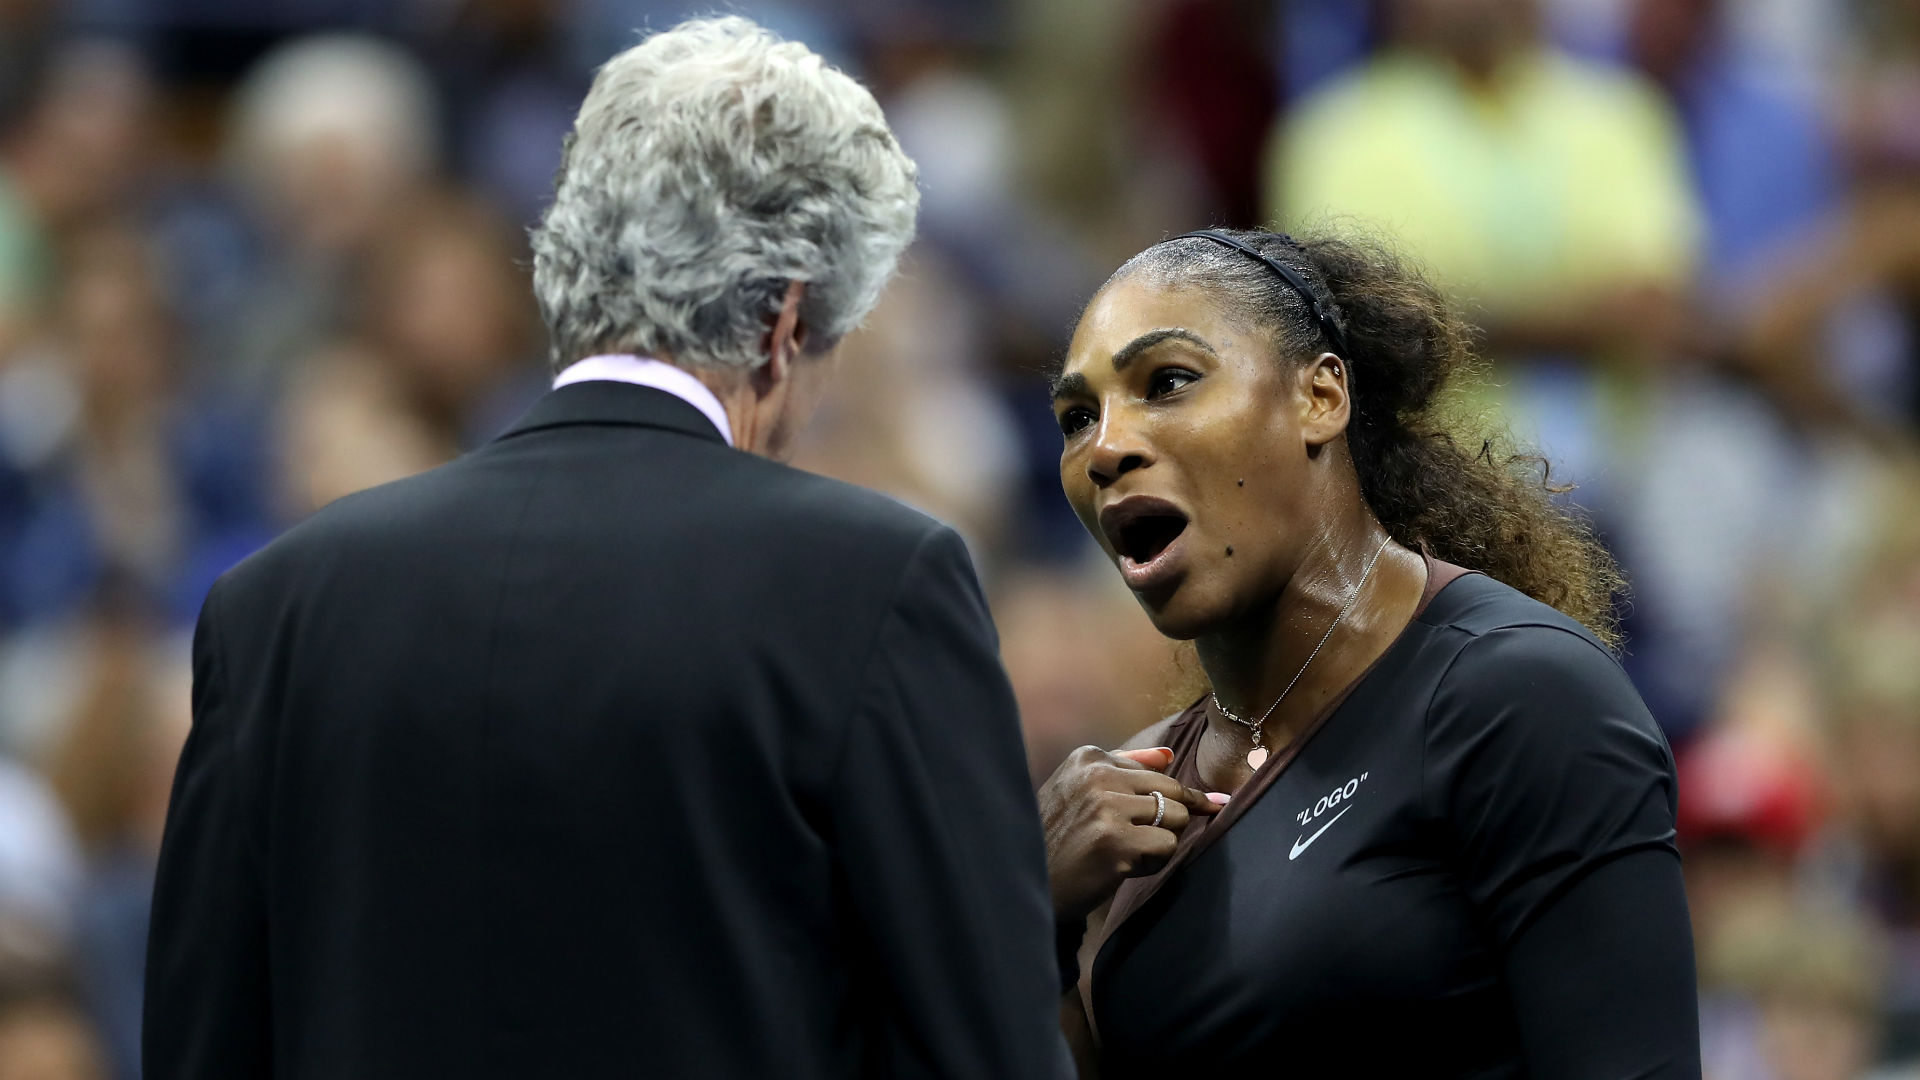 Jamie Murray: Serena Williams' sexism claims 'far-fetched'